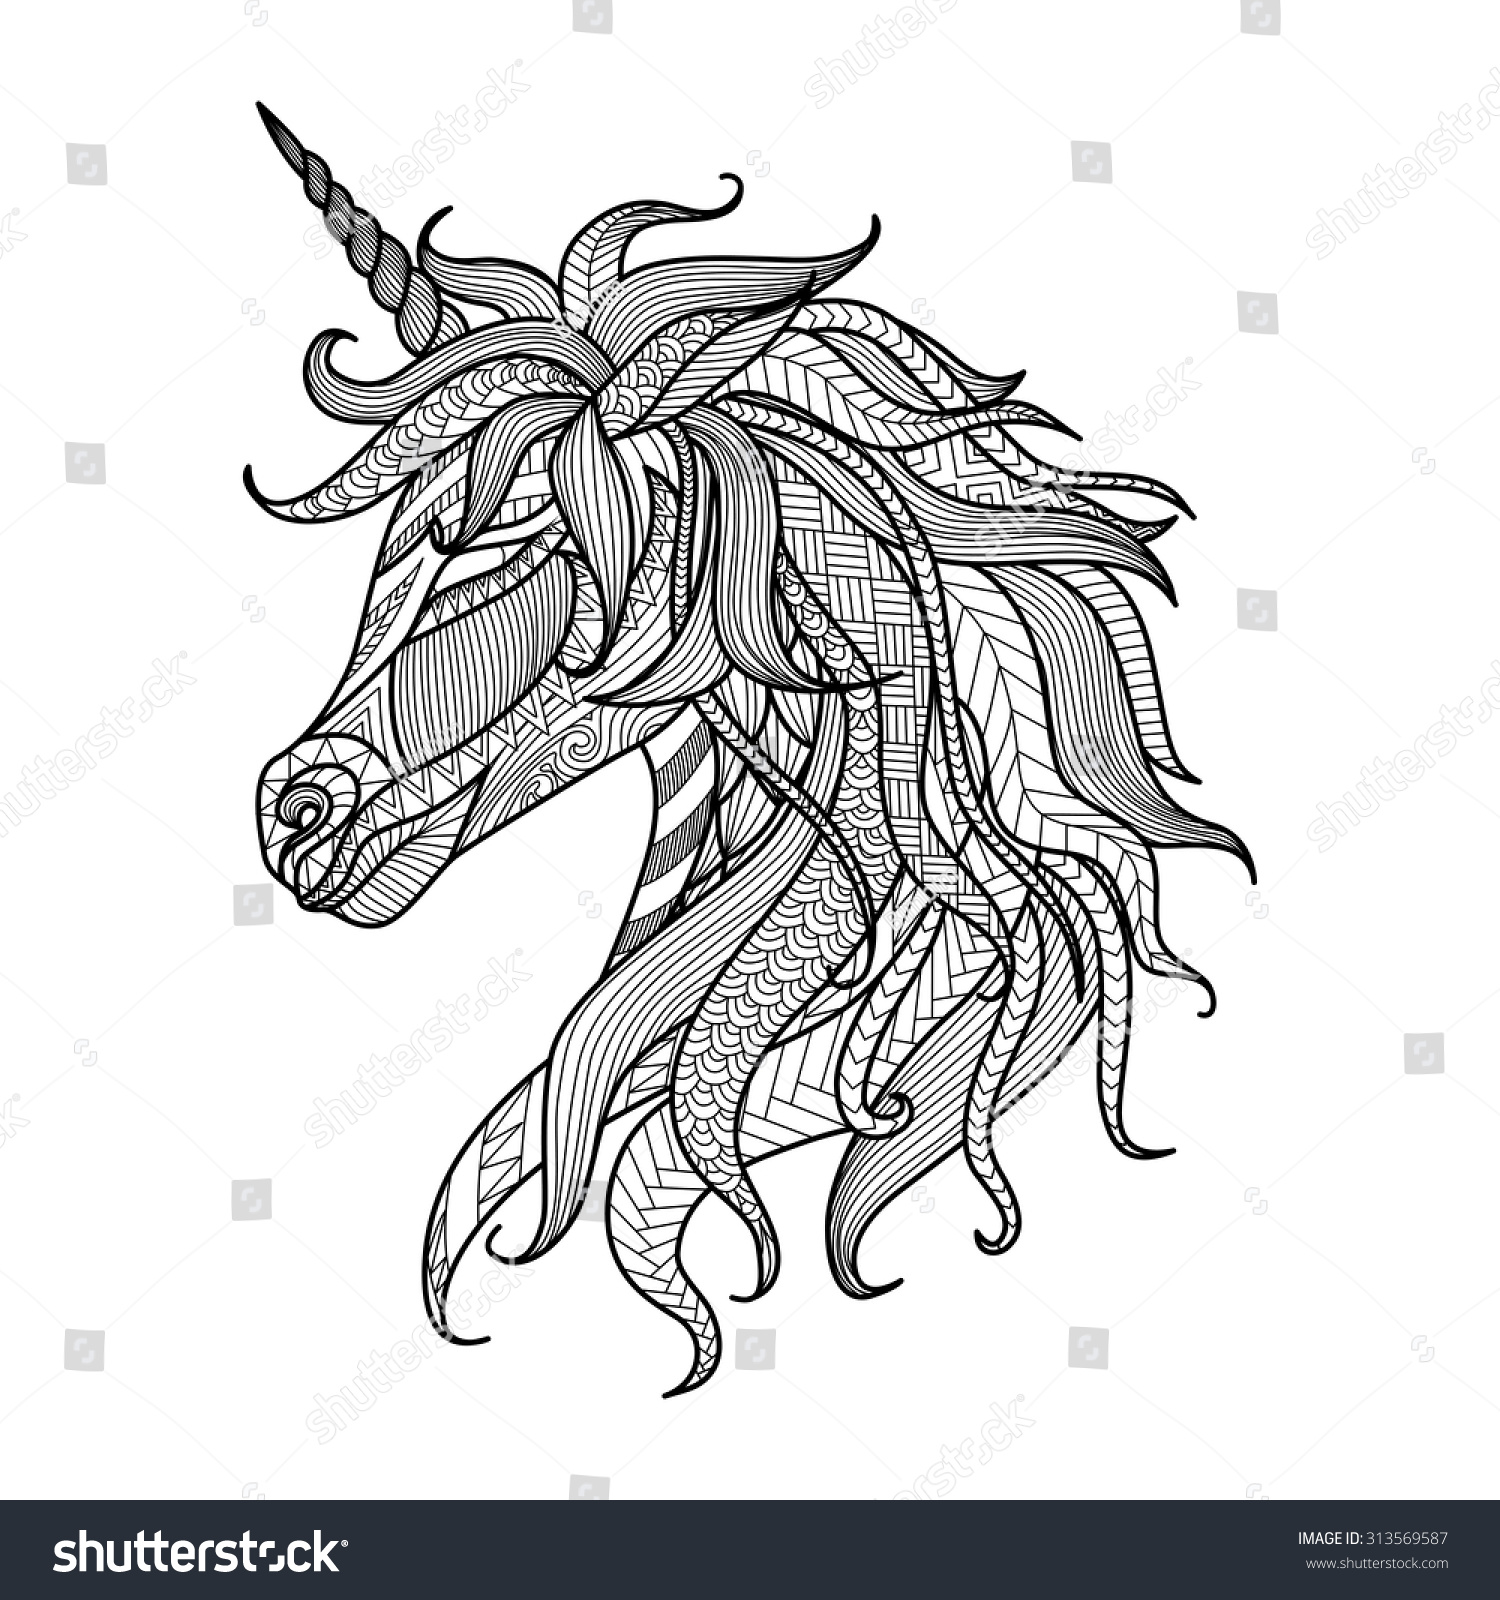 The coloring book tattoo - Drawing Unicorn Zentangle Style For Coloring Book Tattoo Shirt Design Logo Sign